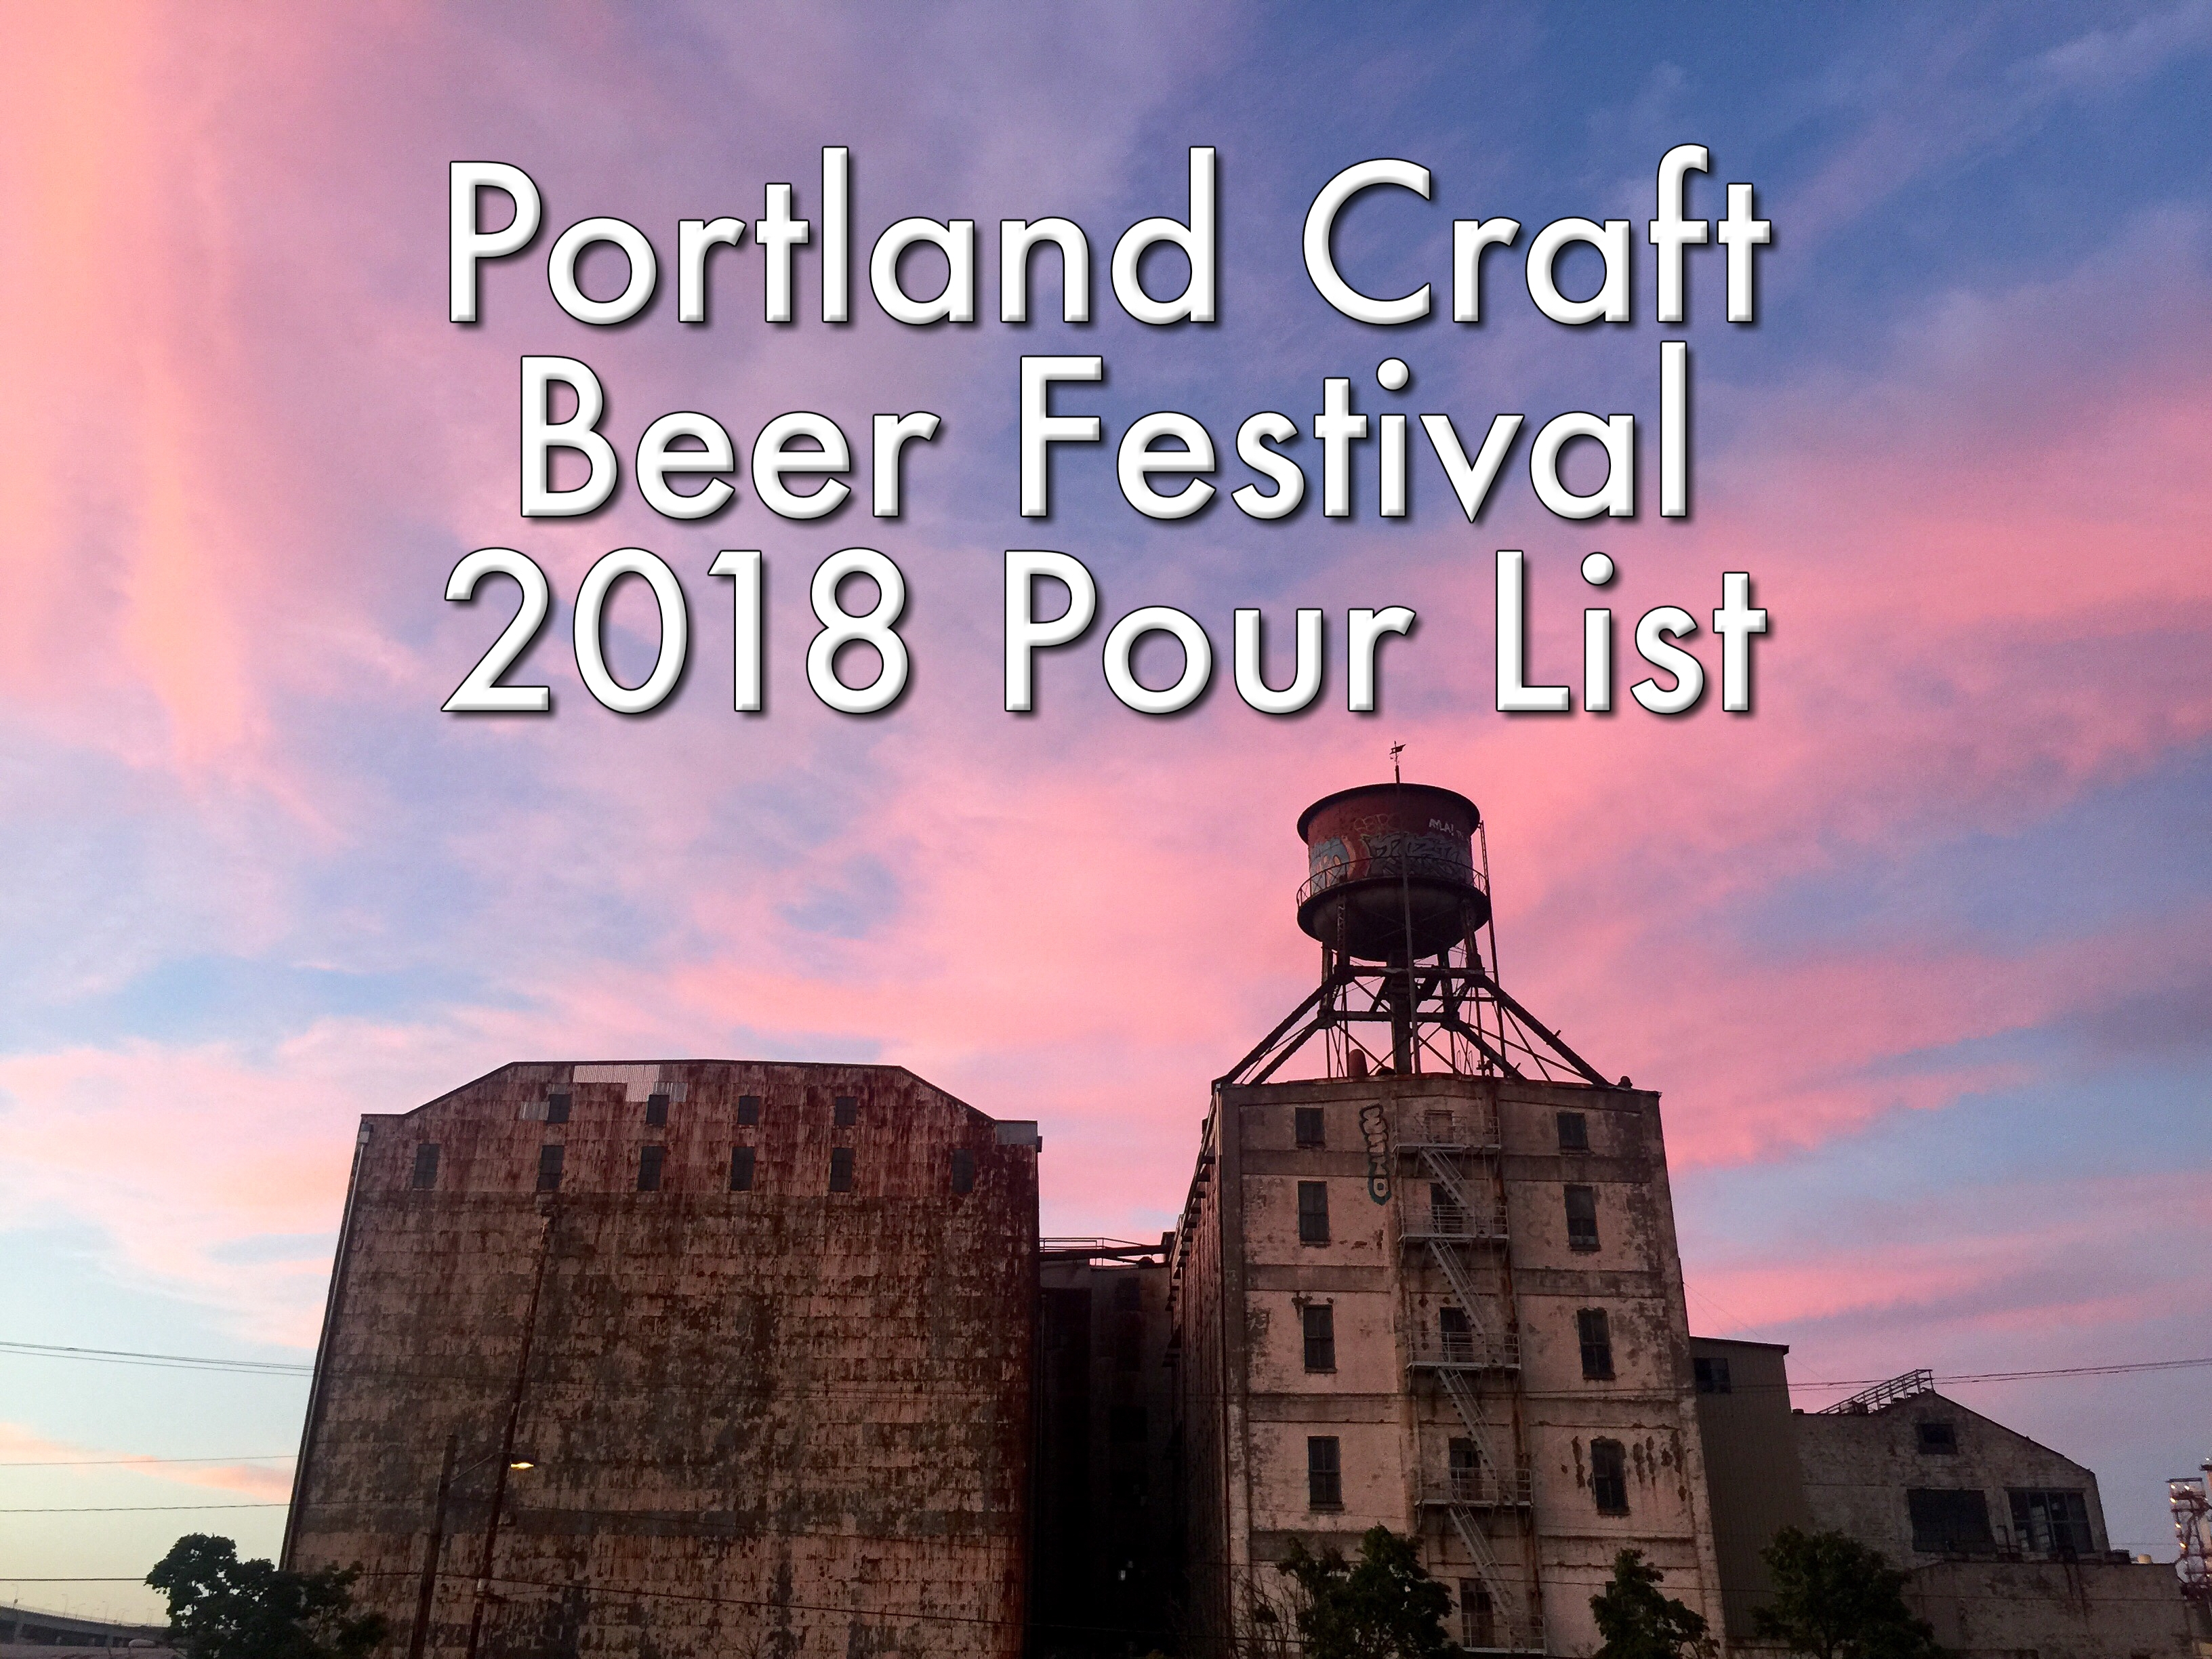 Portland Craft Beer Festival 2018 Preview - Portland Beer Podcast episode 72 by Steven Shomler-116.jpg